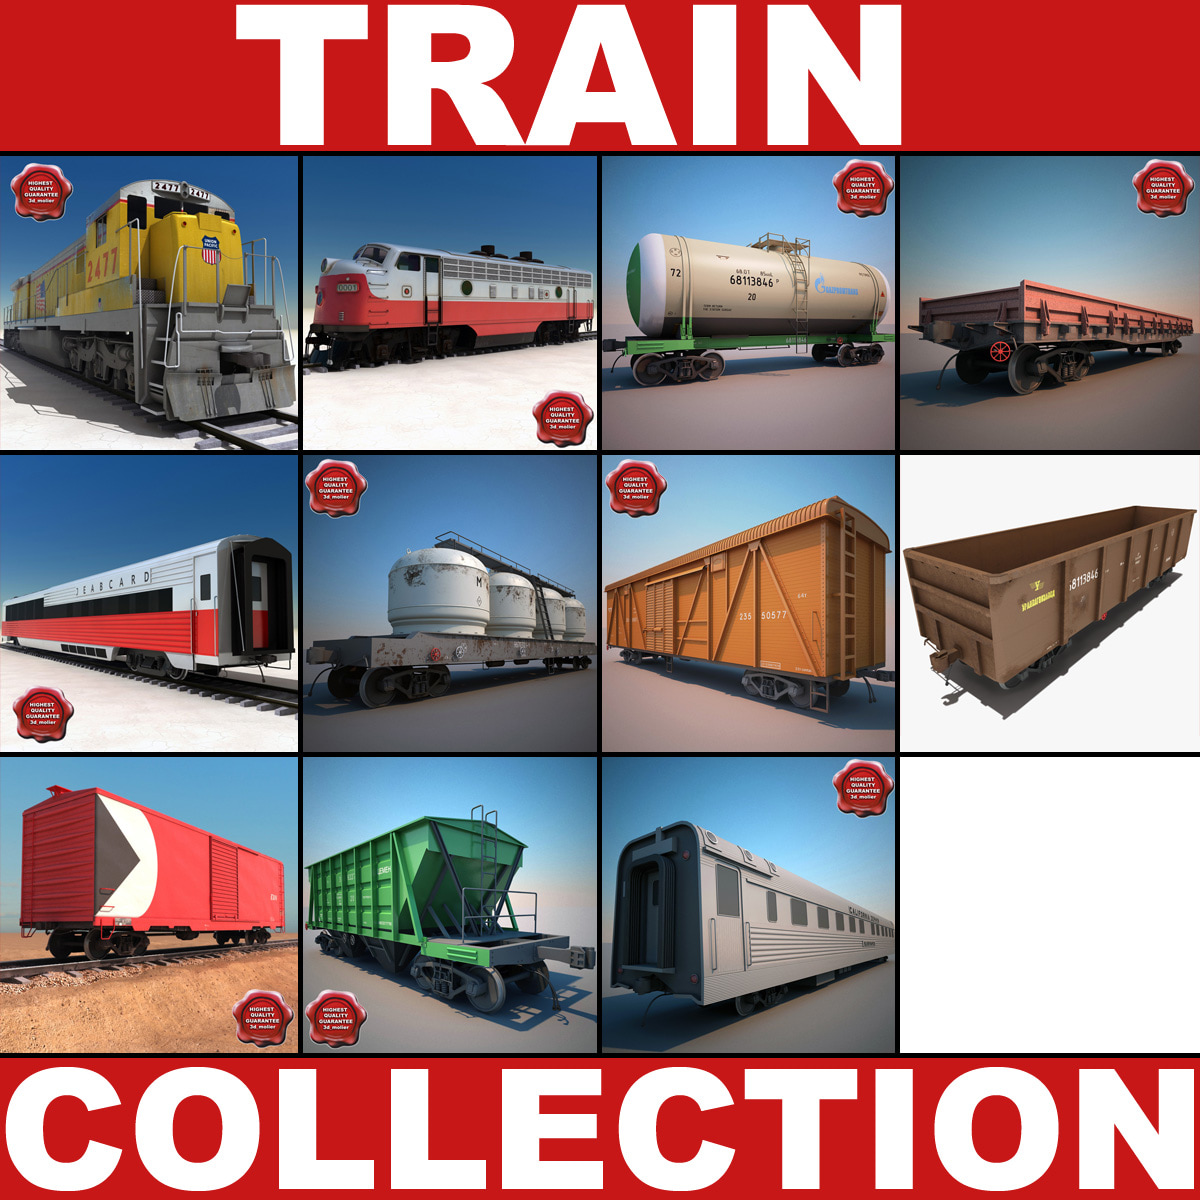 Trains_Collection_v4_000.jpg